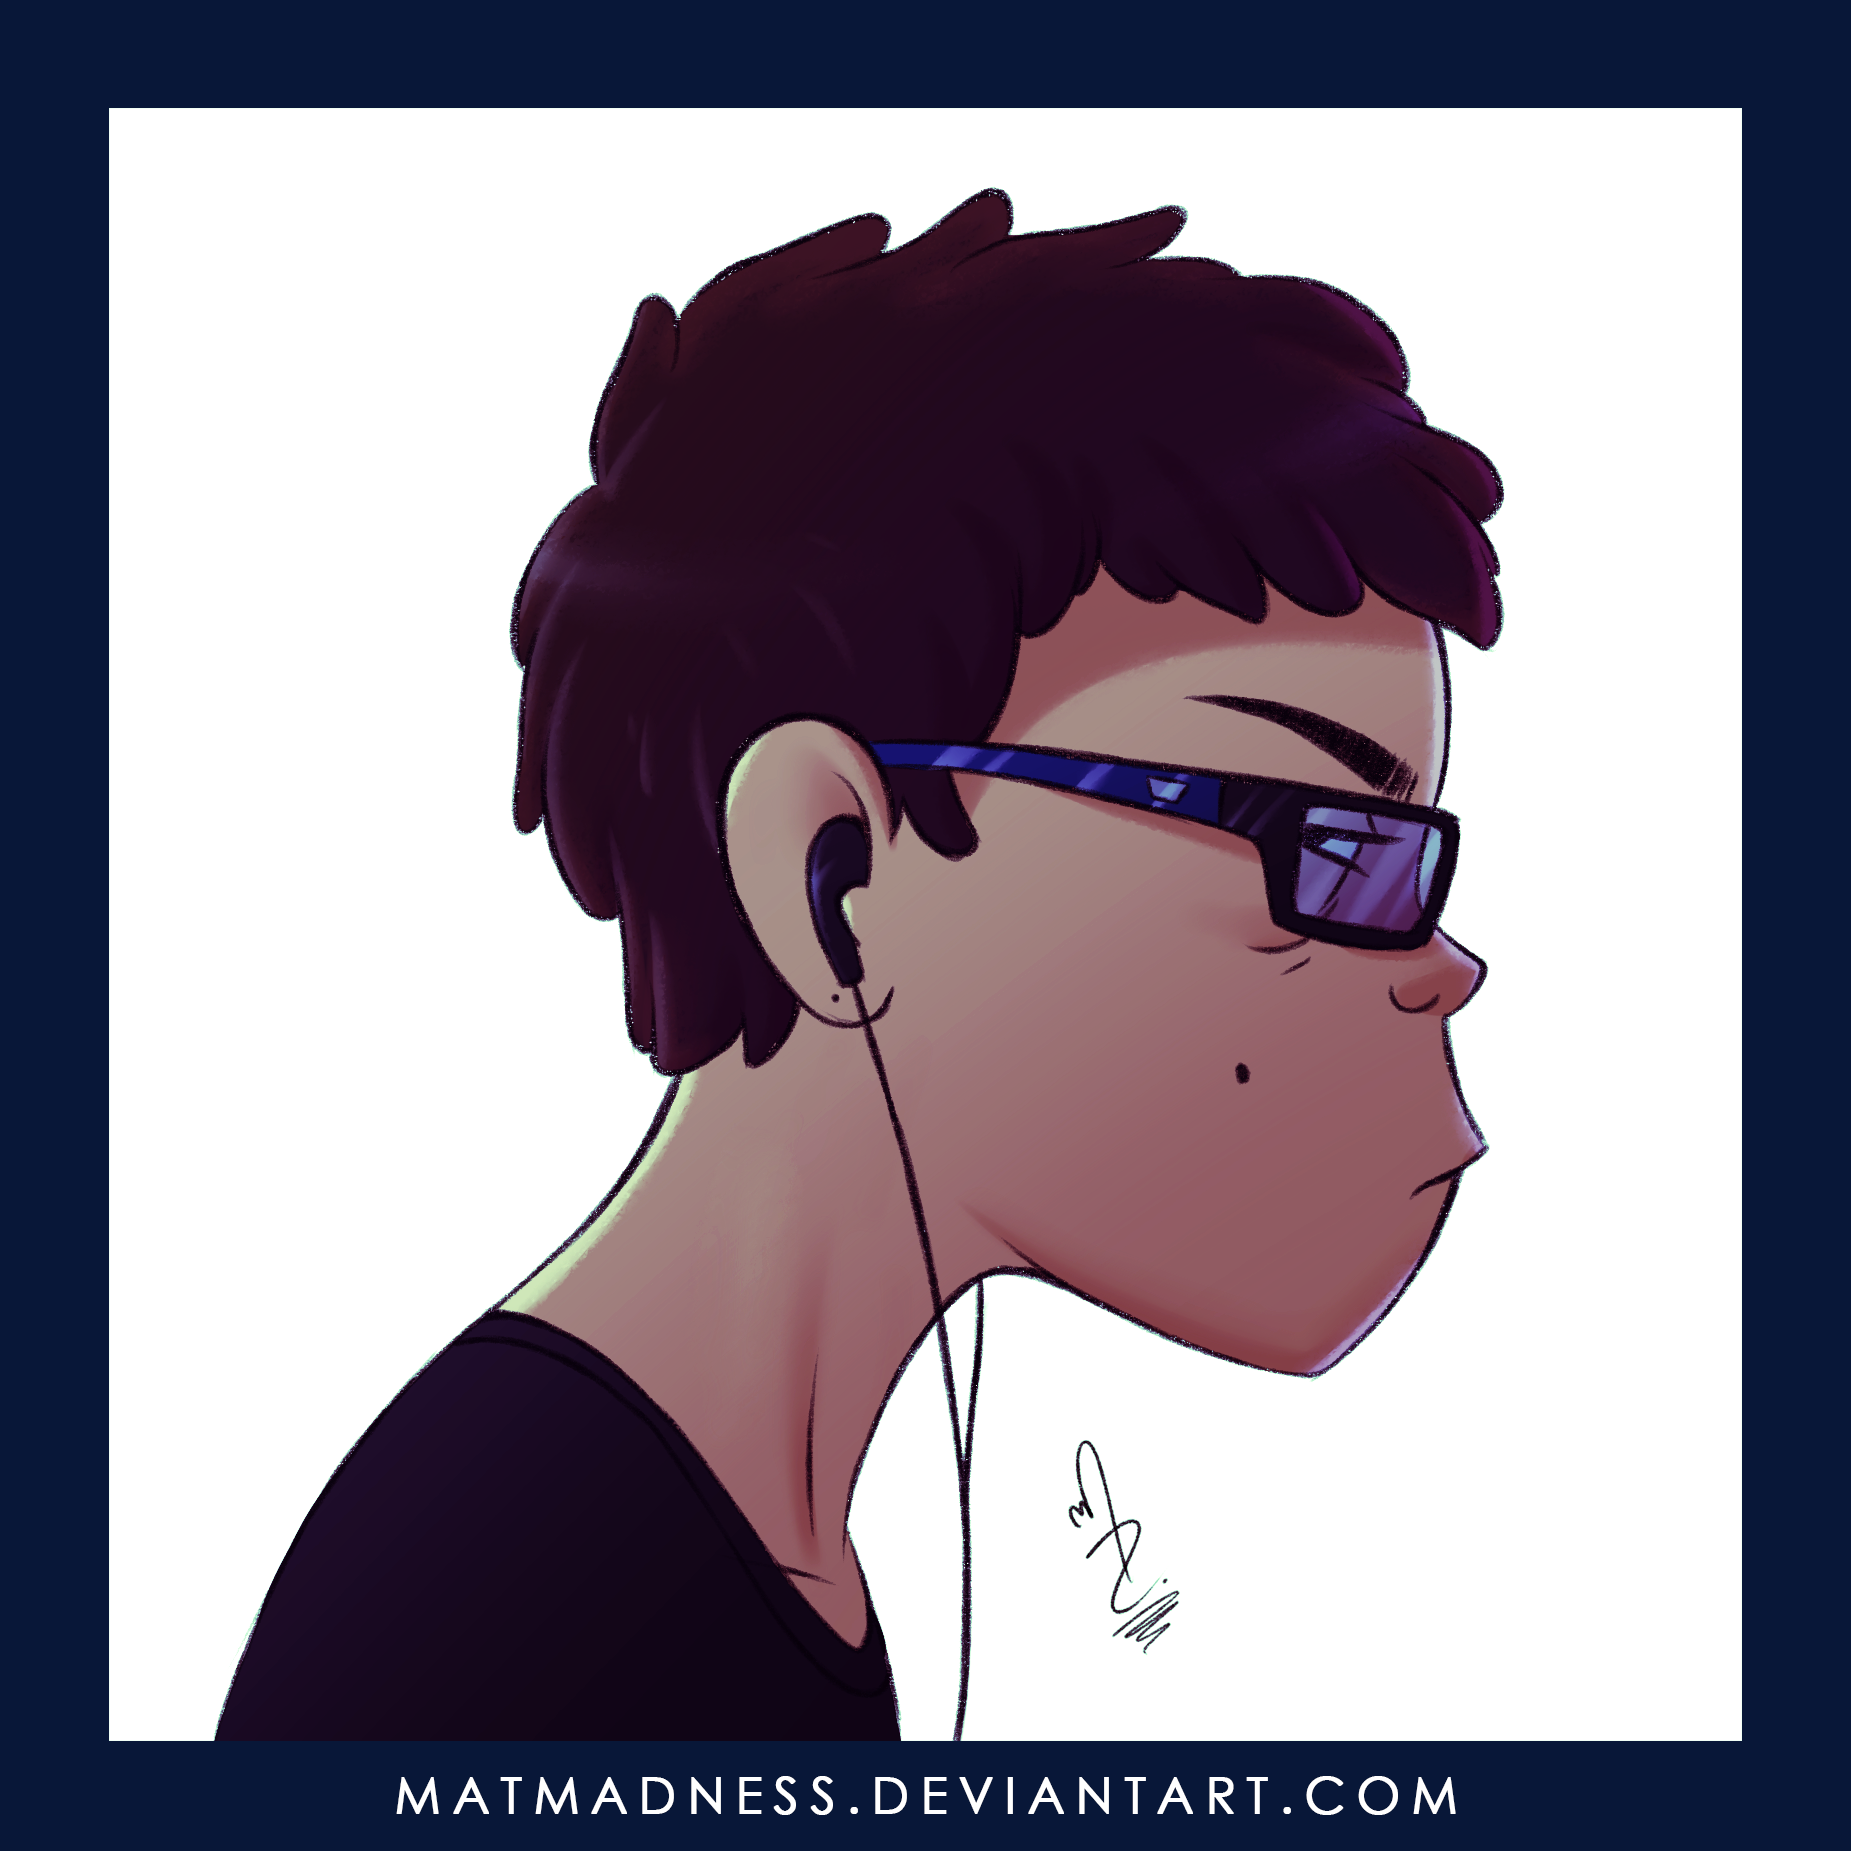 MatMadness's Profile Picture